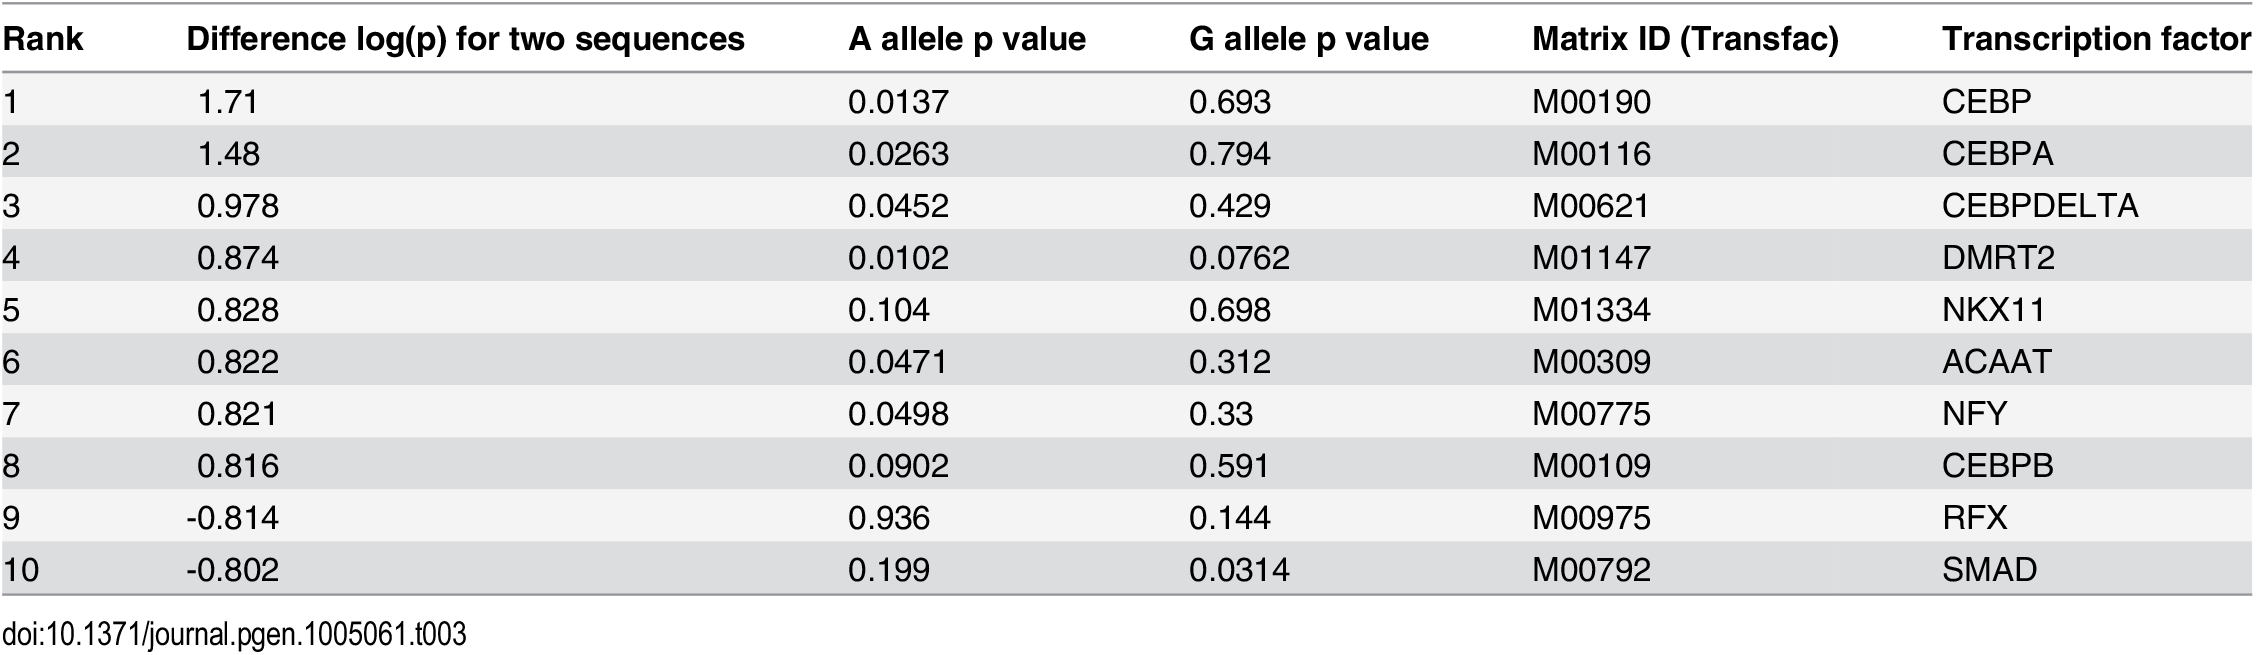 Differential transcription factor motif affinity at the rs72664324 site for the risk G allele and the protective A allele.